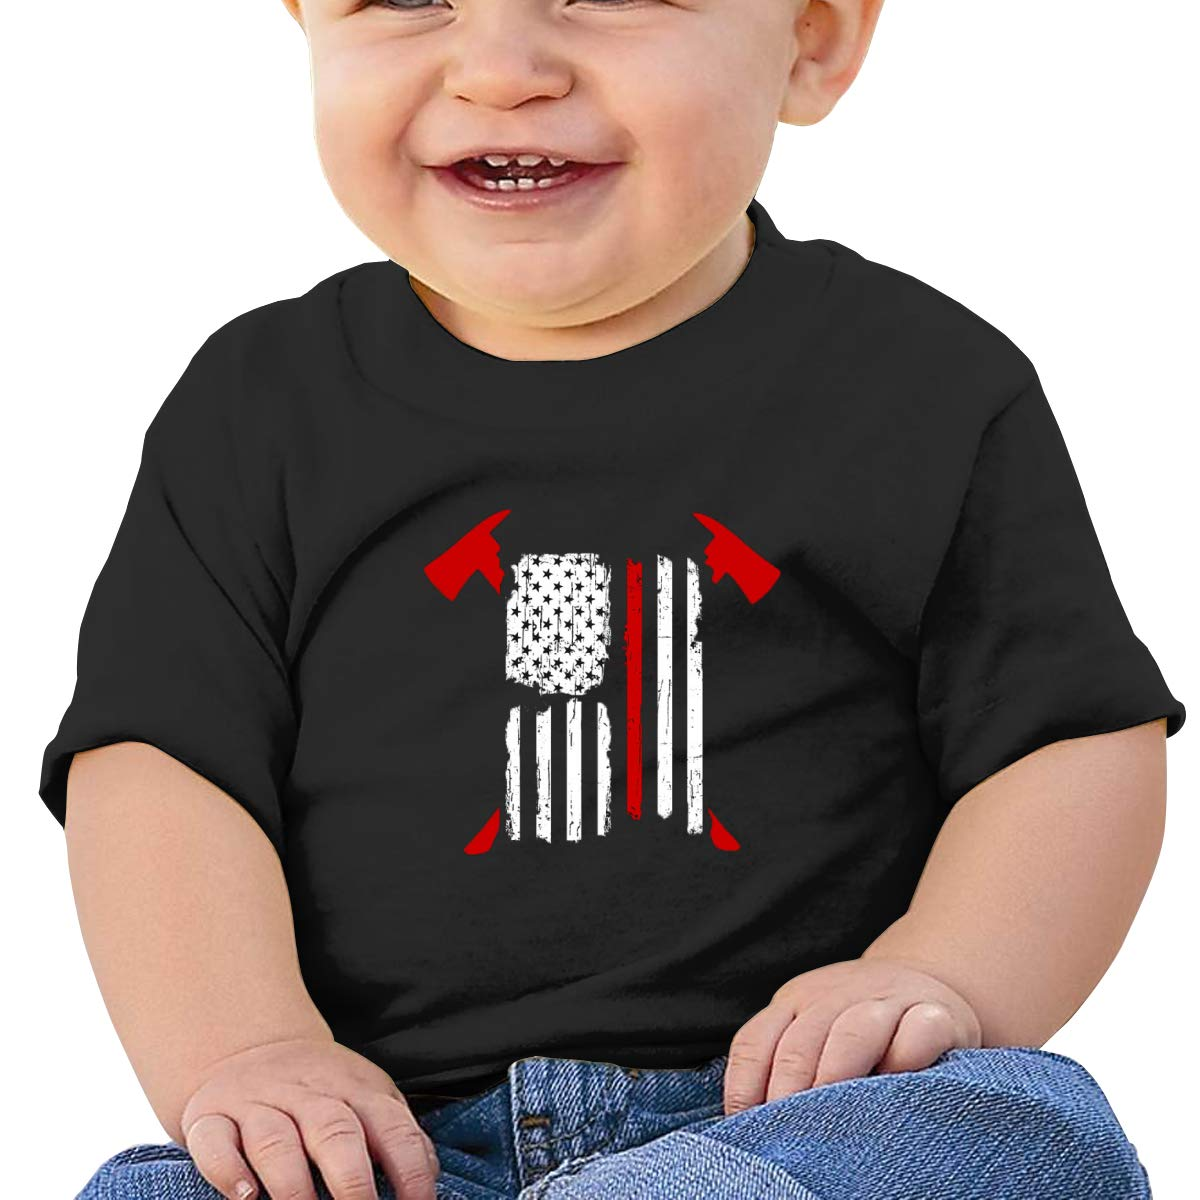 Firefighter Red Line American Flag Baby T-Shirt Toddler//Infant Cotton T Shirts Crew Neck Basic Shirt for 6M-2T Baby